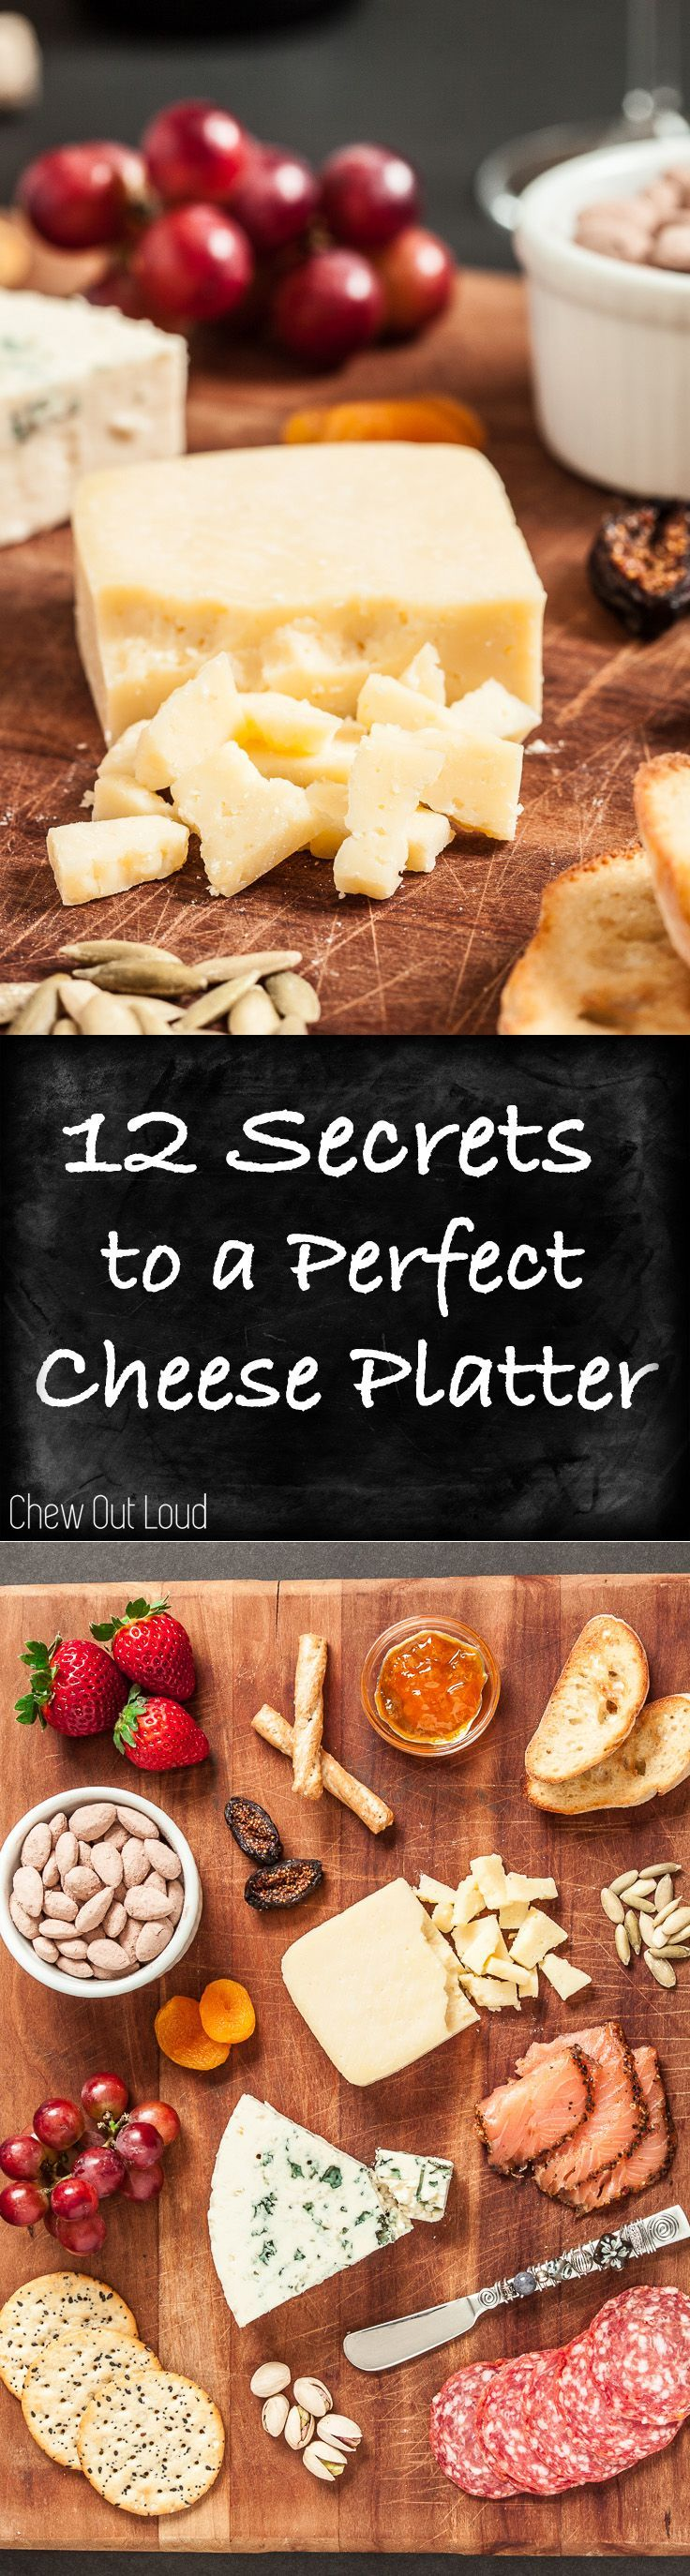 12 Secrets to a Perfect Cheese Platter. Plus Recipe for the BEST 4-ingredient, all natural (GF) Chocolate Cocoa Almonds! YUM. #appetizer #snack #chocolate